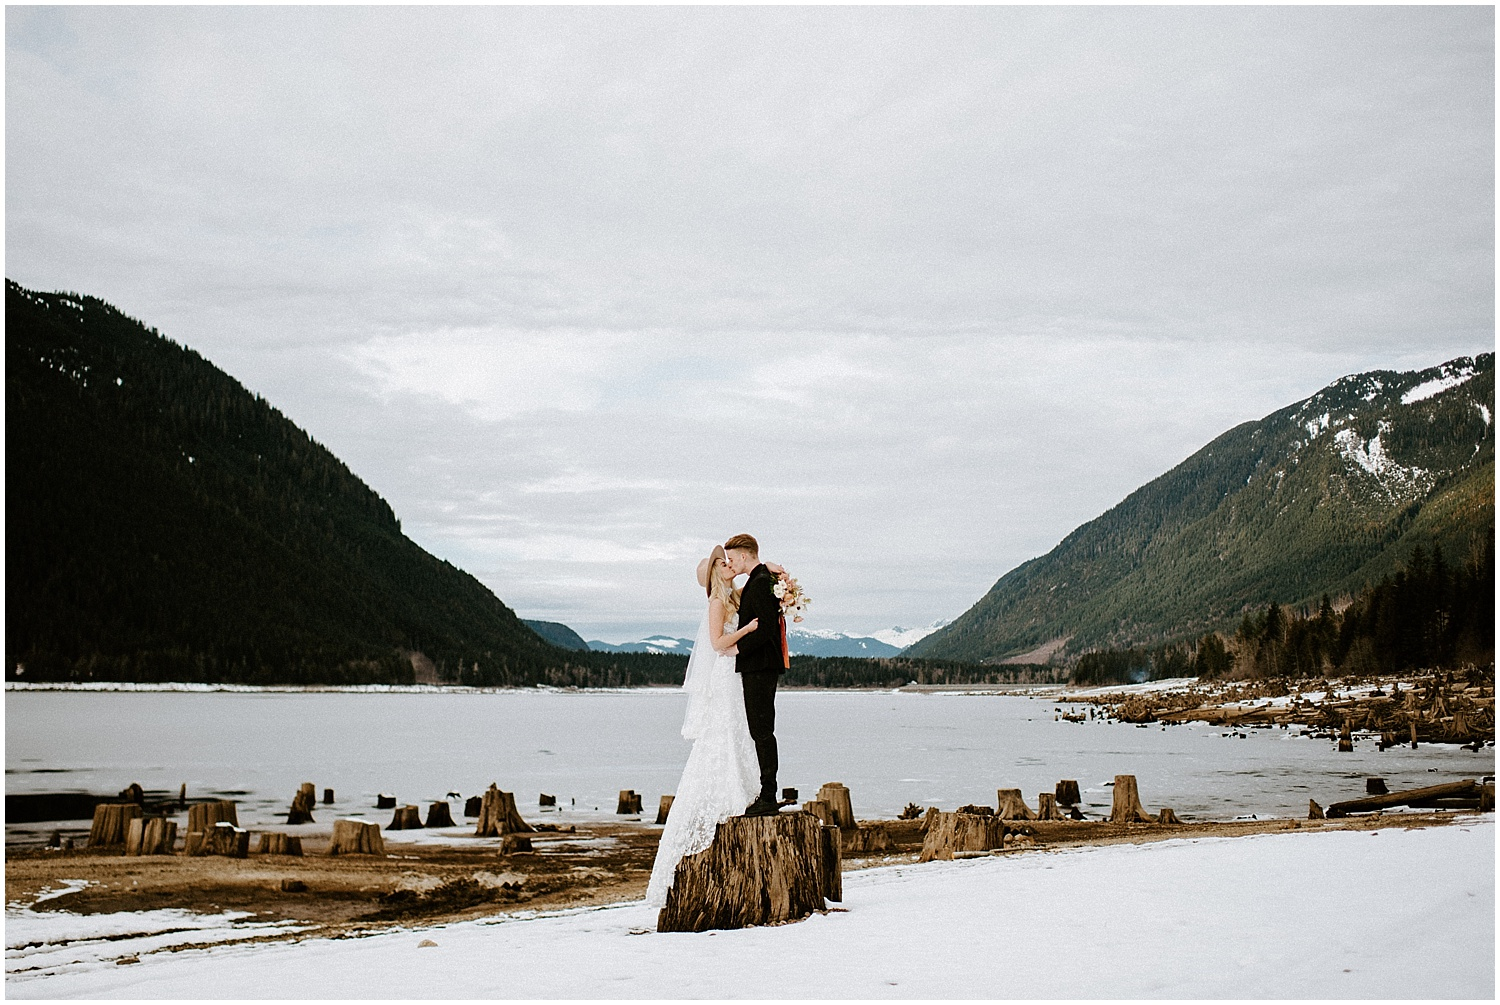 Jones_Lake_wedding_winter_elopement_vancouver_photographer_0255.jpg